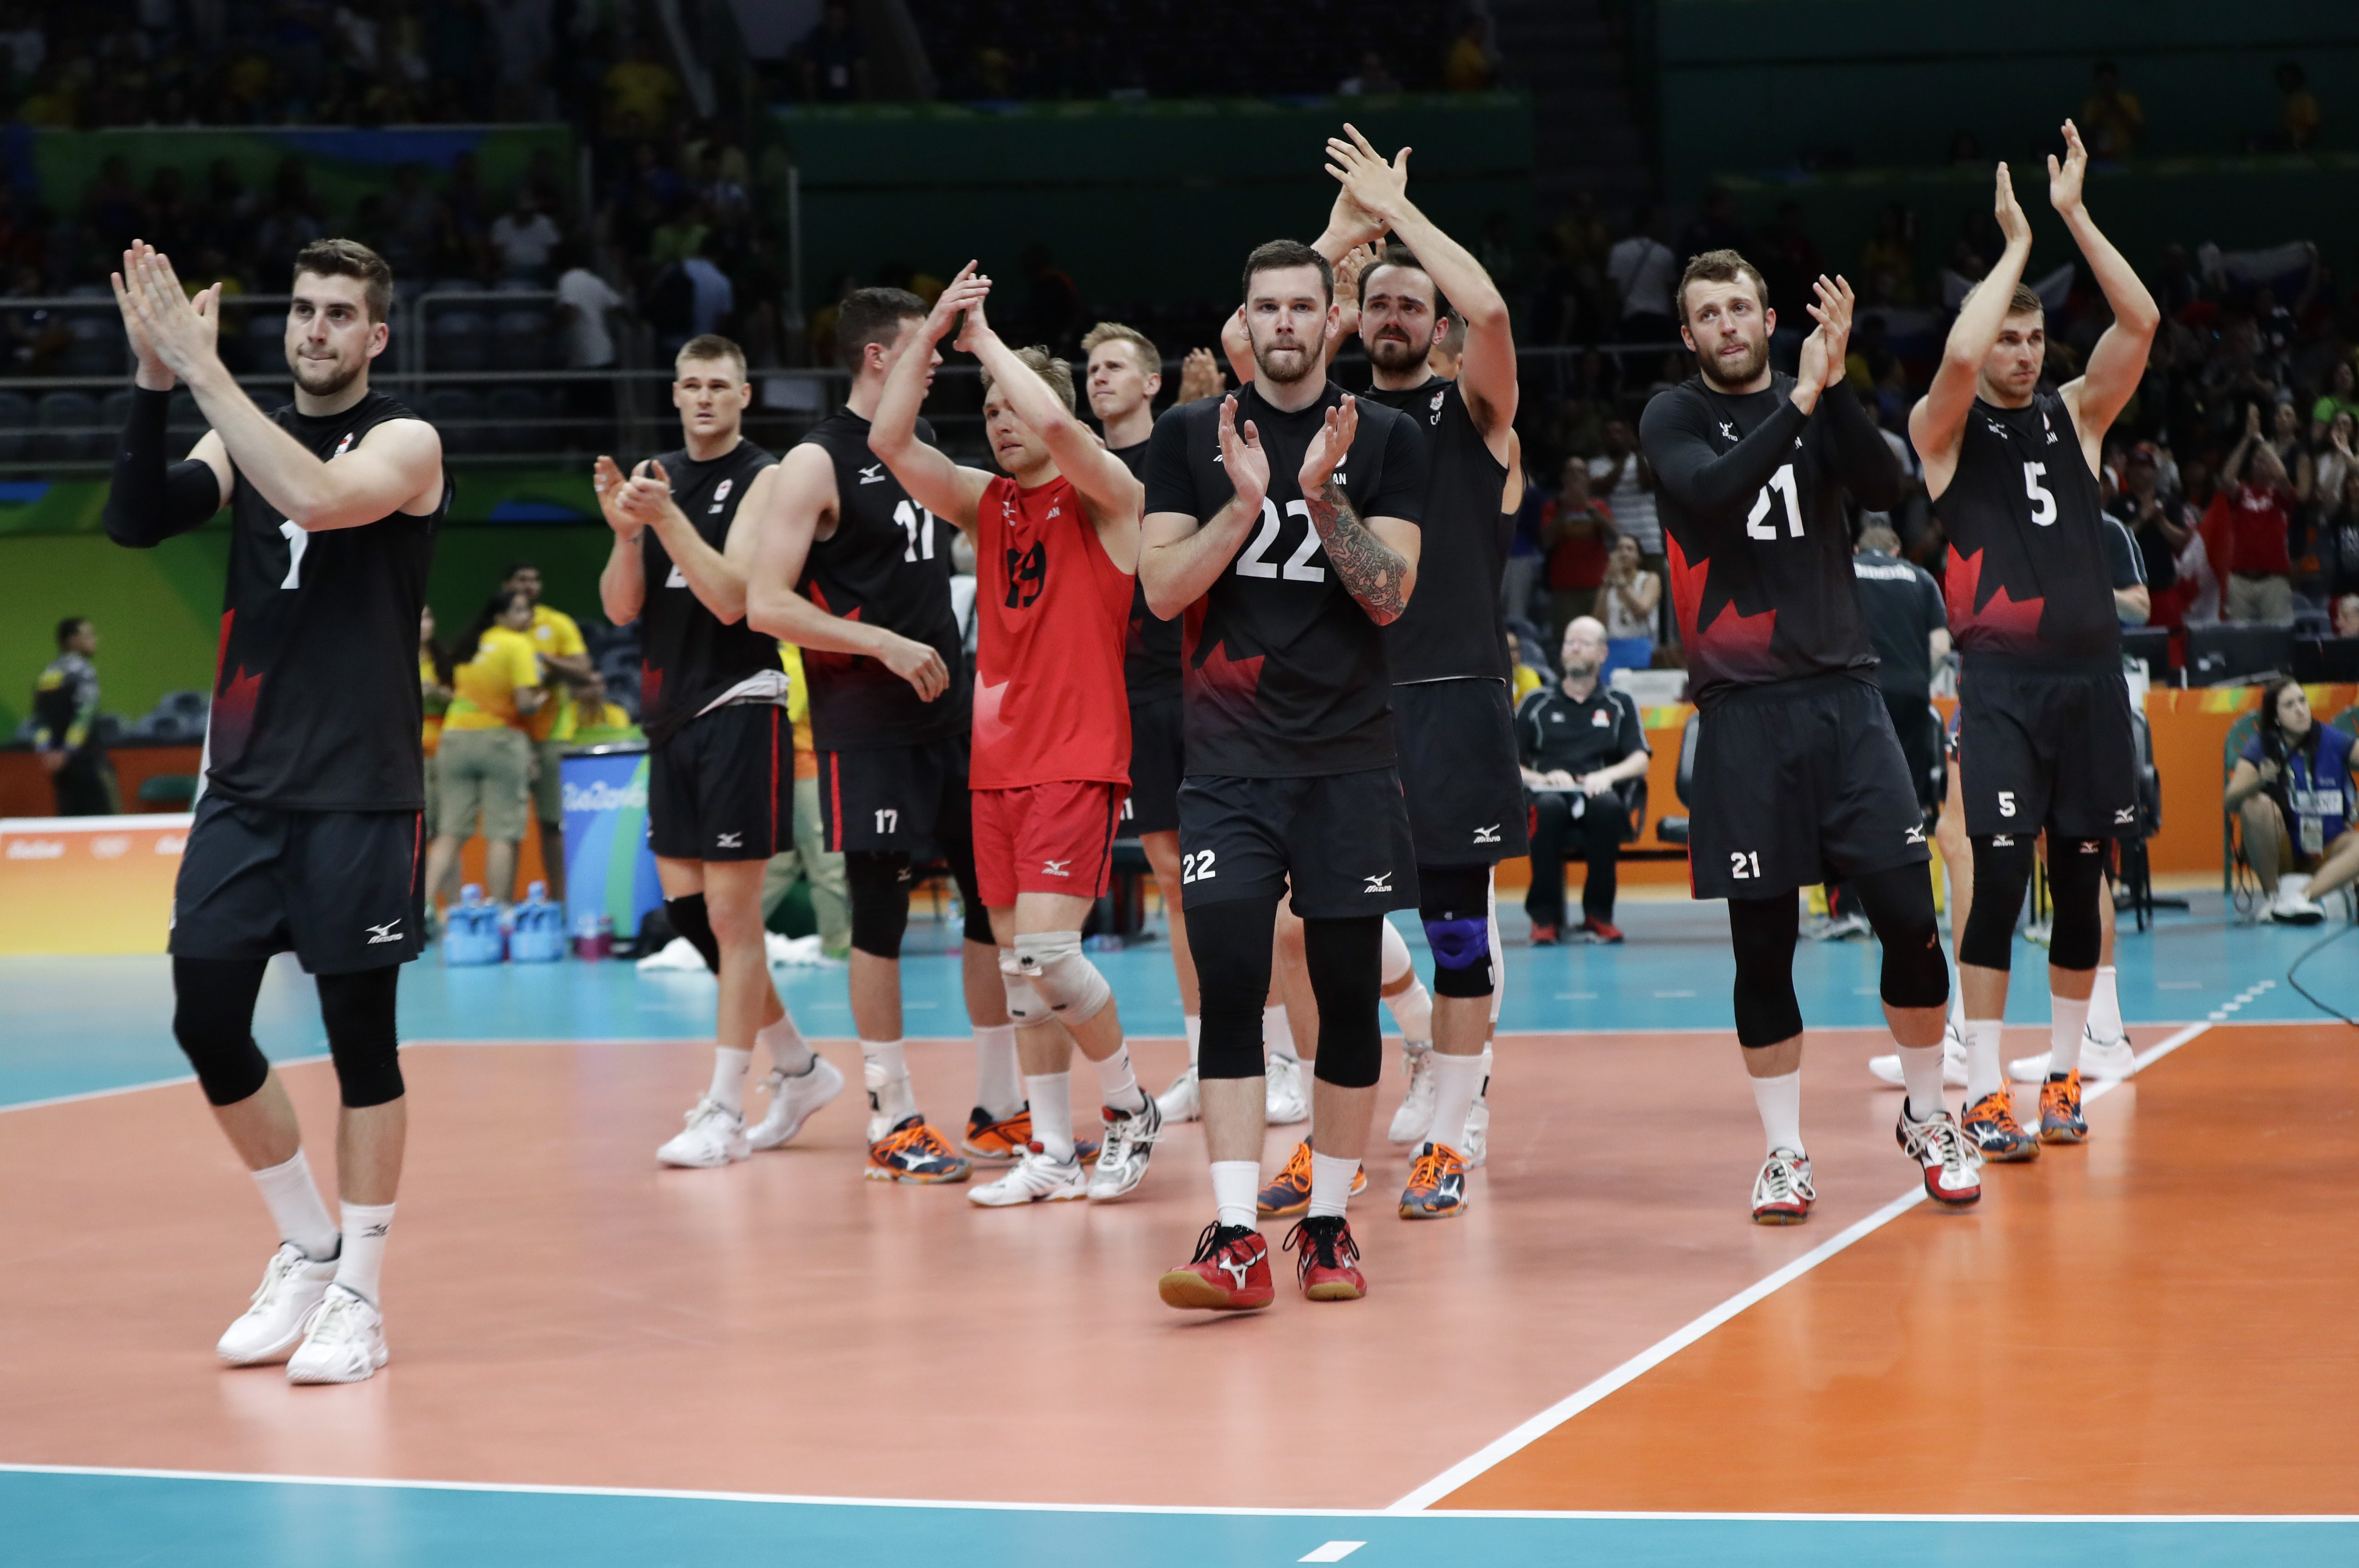 Canada's players applaud their fans after losing to Russia in straight sets in a men's quarterfinal volleyball match at the 2016 Summer Olympics in Rio de Janeiro, Brazil, Wednesday, Aug. 17, 2016. (AP Photo/Robert F. Bukaty)